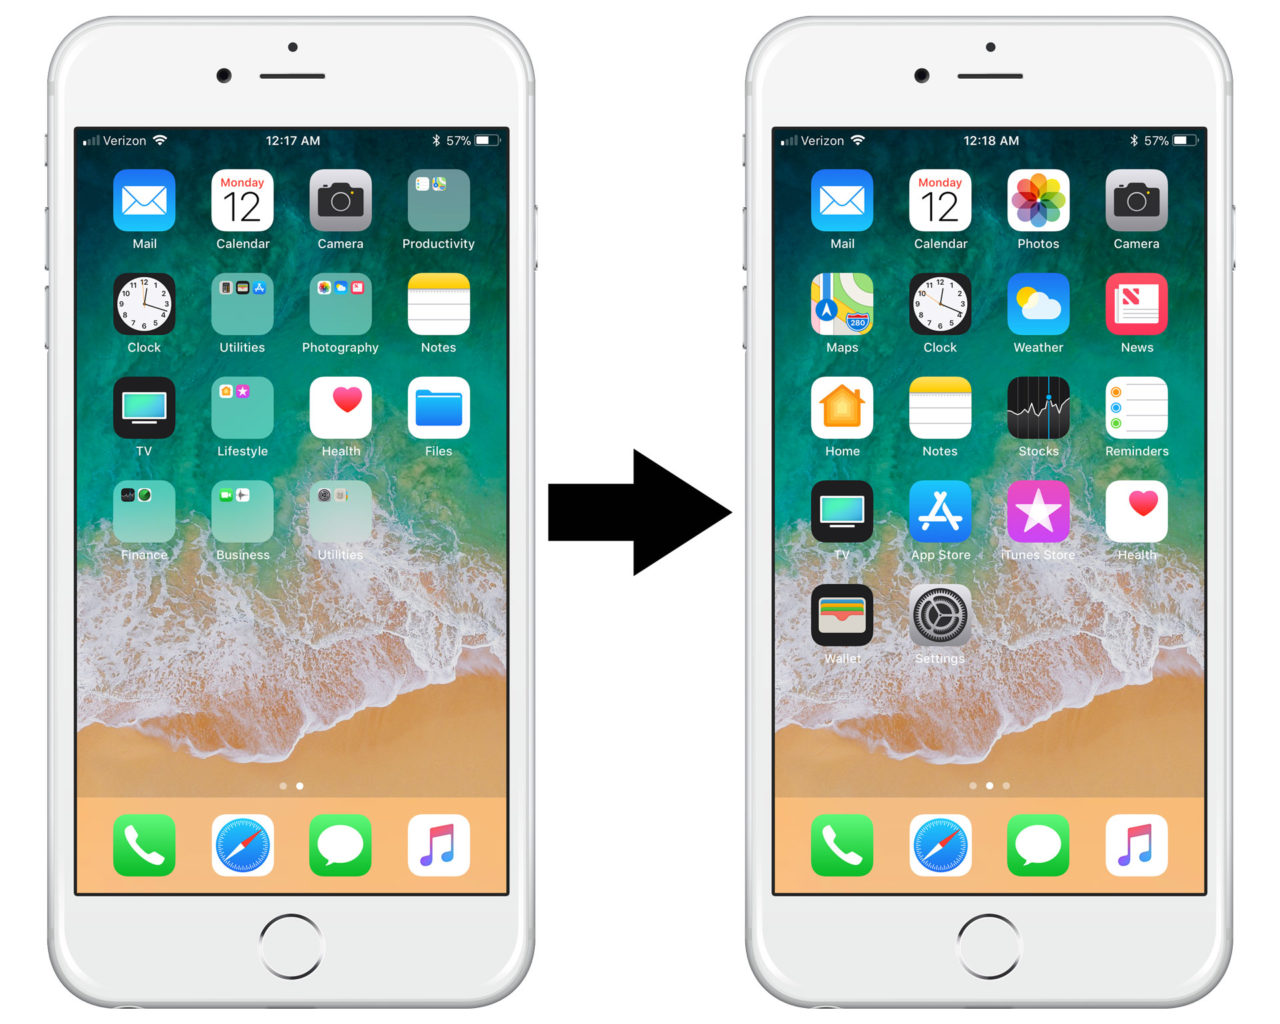 Clean Up Your Iphone Apps How To Reset The Home Screen Layout